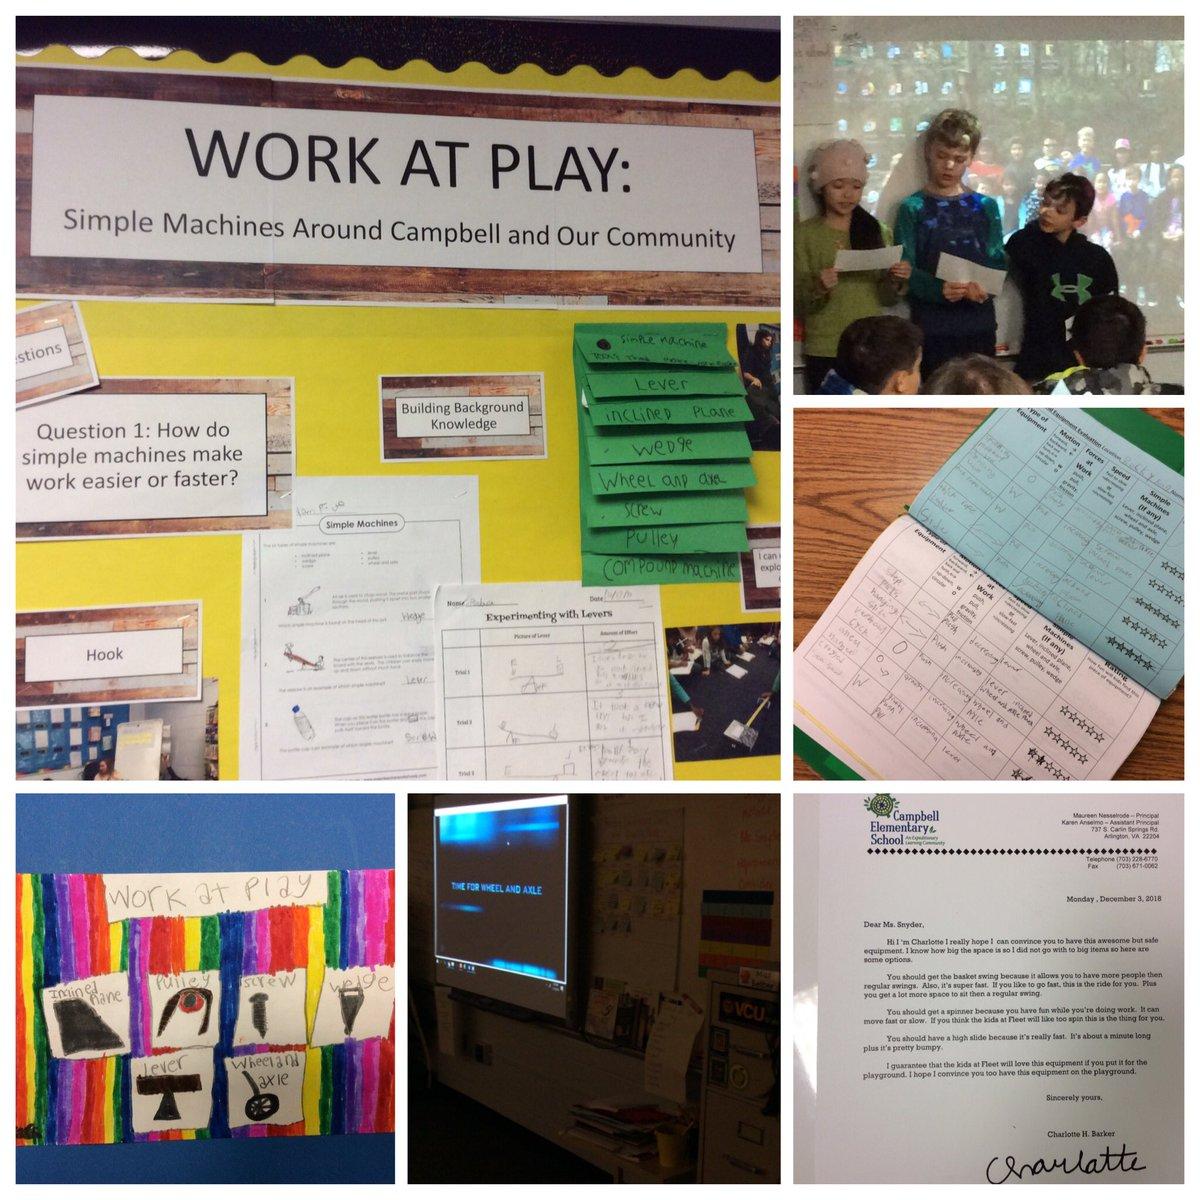 3rd grade Ss <a target='_blank' href='http://twitter.com/CampbellAPS'>@CampbellAPS</a> shared their learning at their expedition showcase tonight: Work at Play.  The highlights were the movies groups created and the letters each student wrote to recommend playground equipment for the new APS school. <a target='_blank' href='http://twitter.com/ELeducation'>@ELeducation</a> <a target='_blank' href='https://t.co/g8c3SAqp76'>https://t.co/g8c3SAqp76</a>